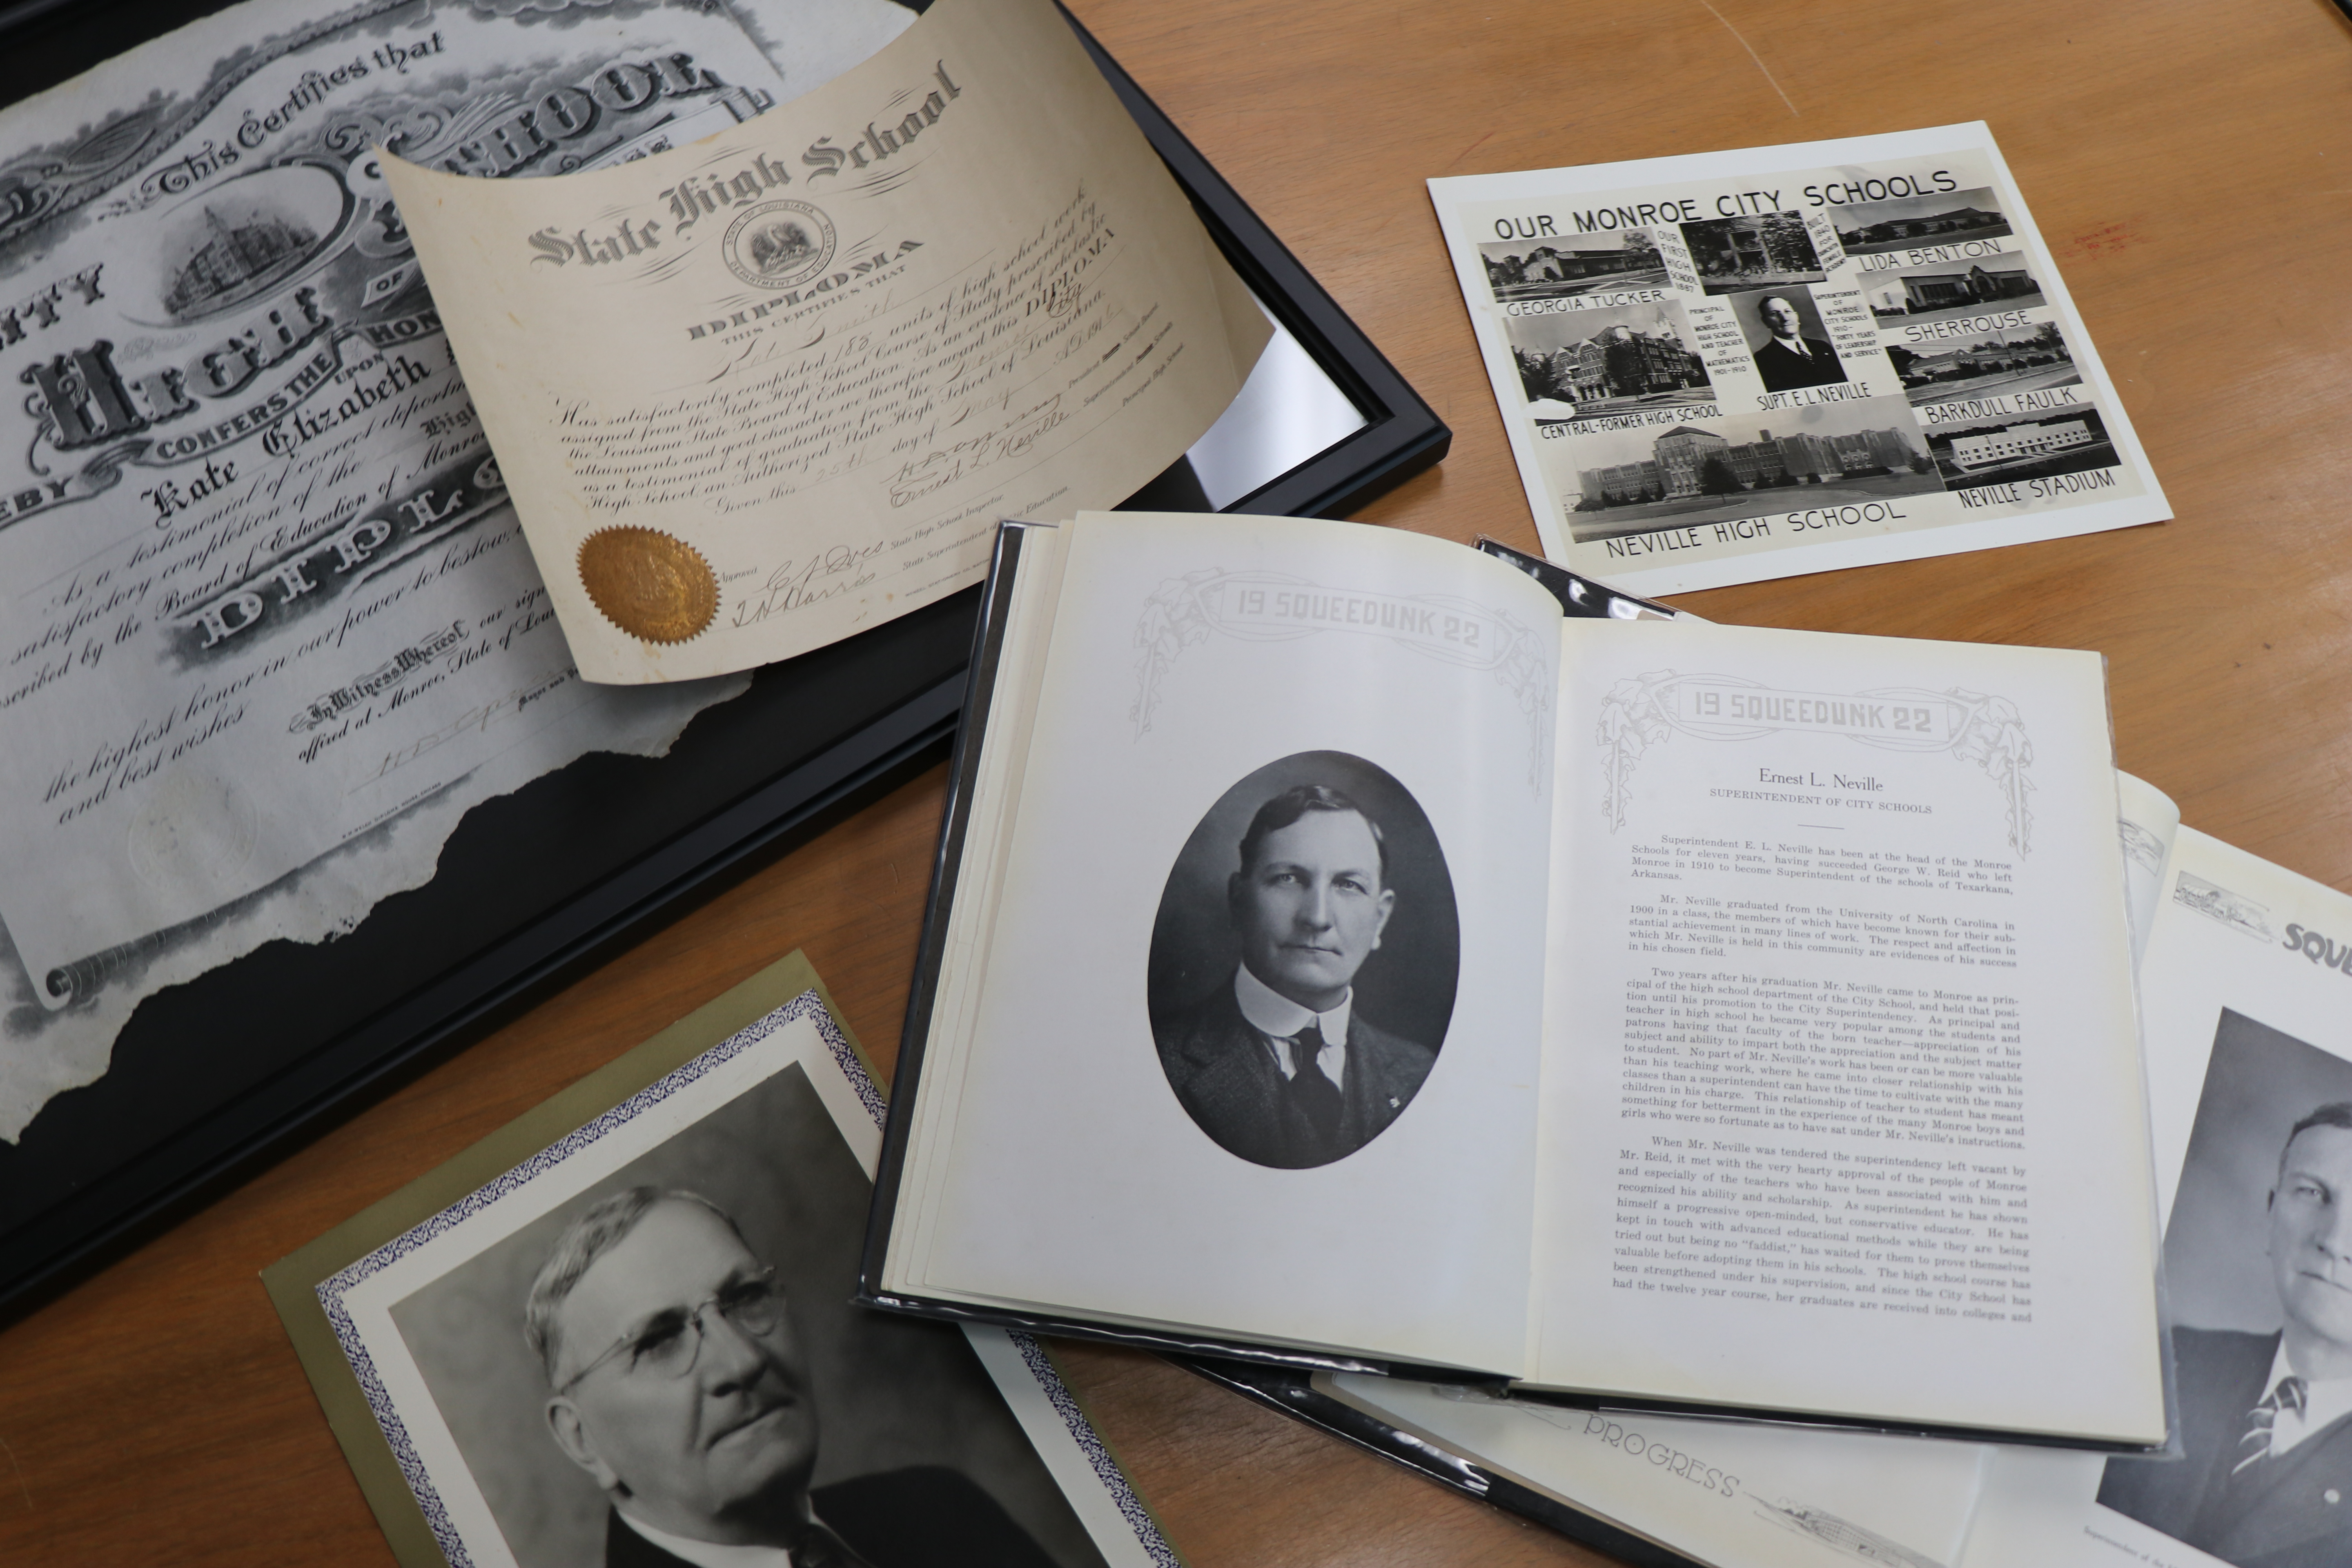 A table featuring various historical items: a portrait of Ernest Long Neville, a high school diploma, the Squeedunk 1922 yearbook open to a portrait of Ernest Neville